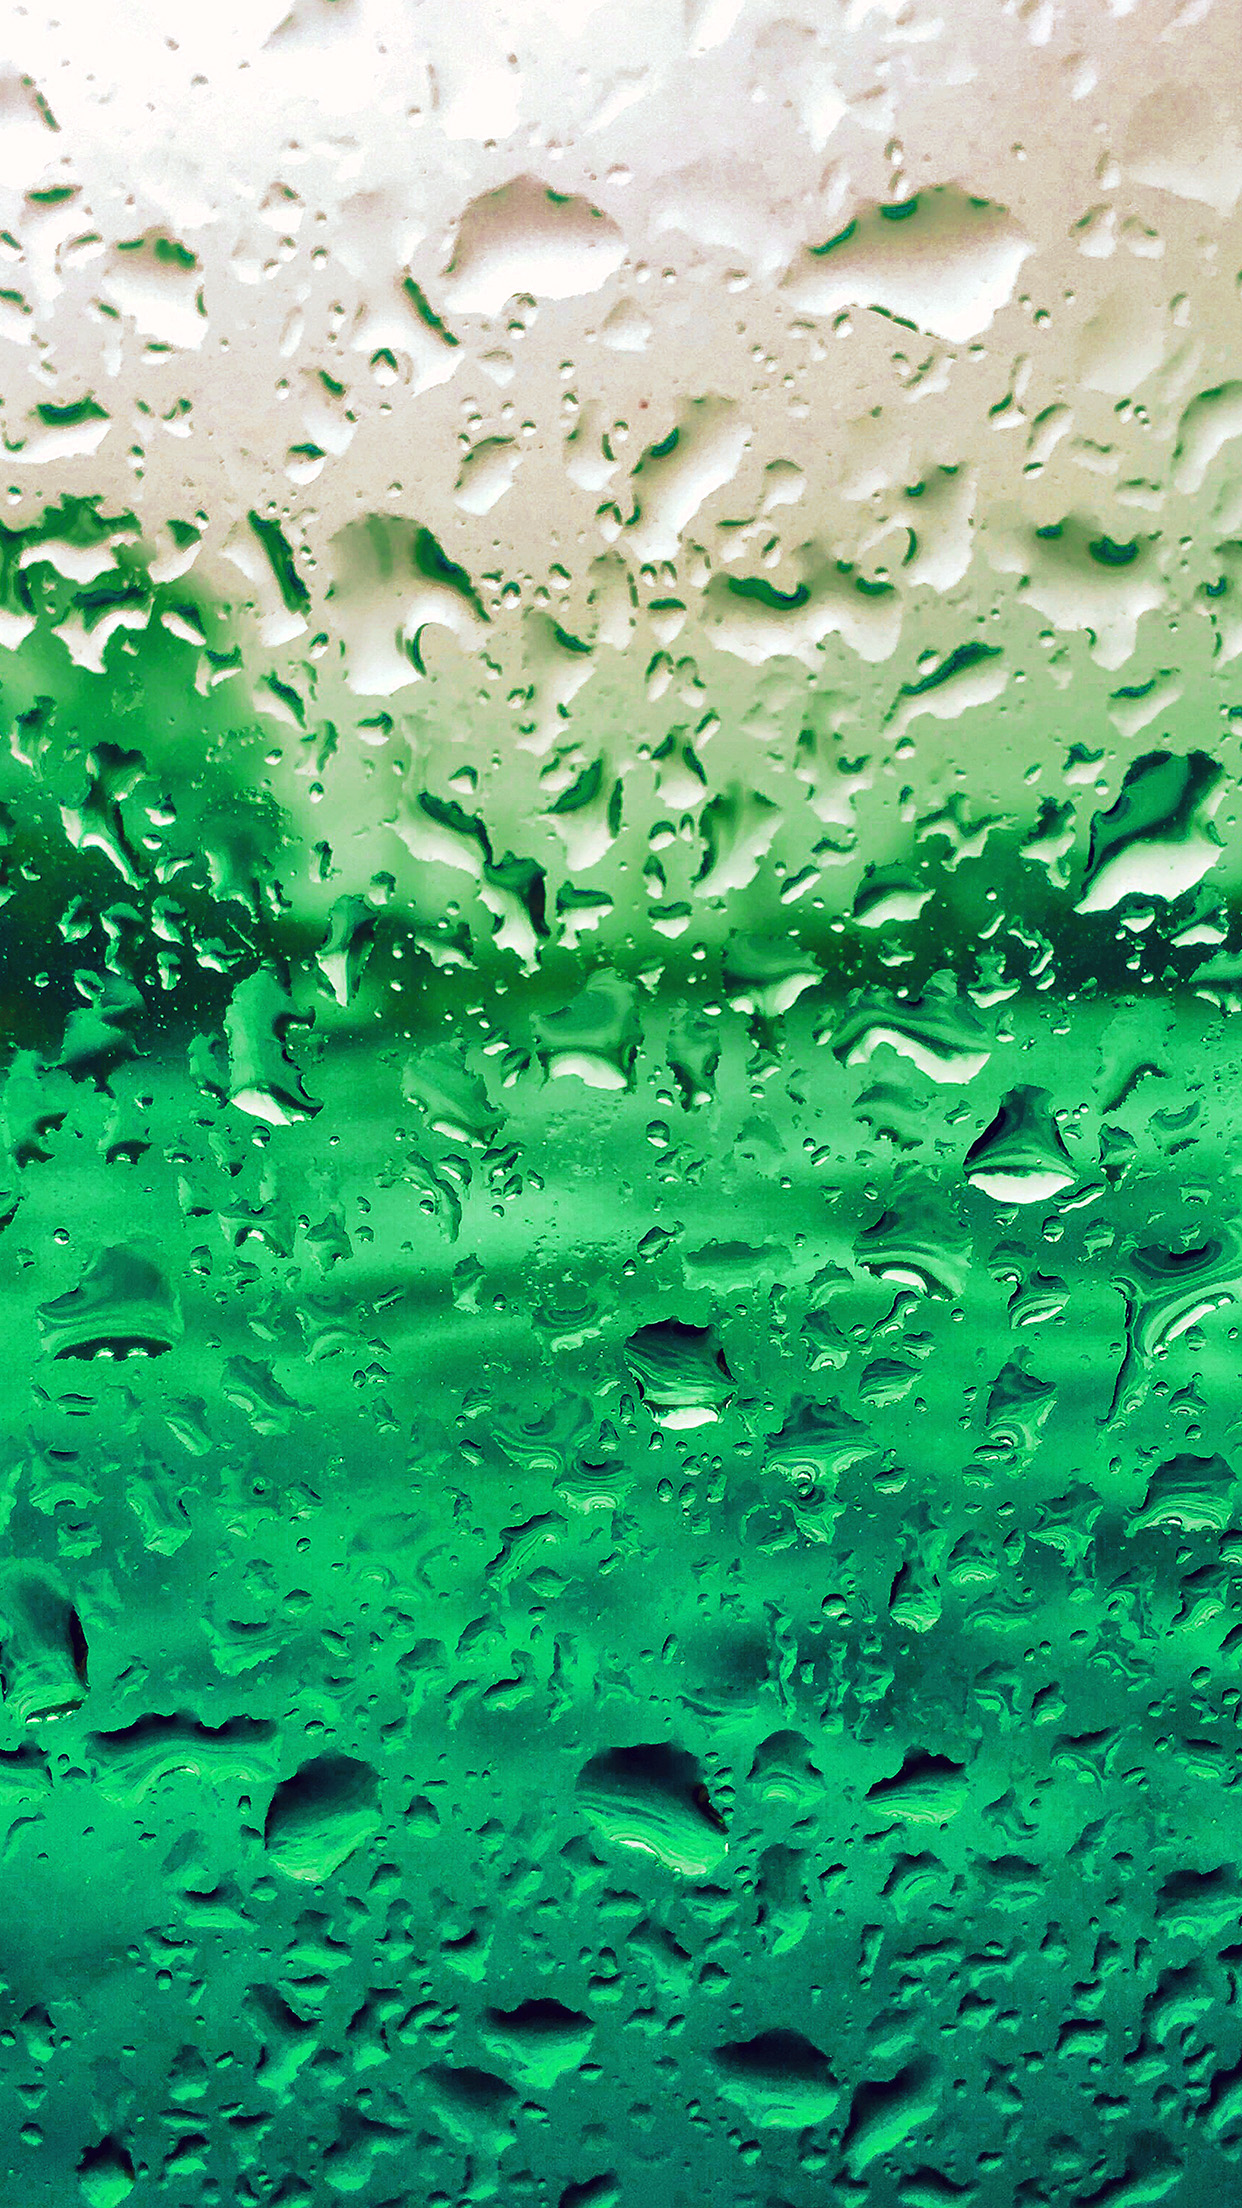 Iphone7papers Com Iphone7 Wallpaper Vr71 Rain Drop